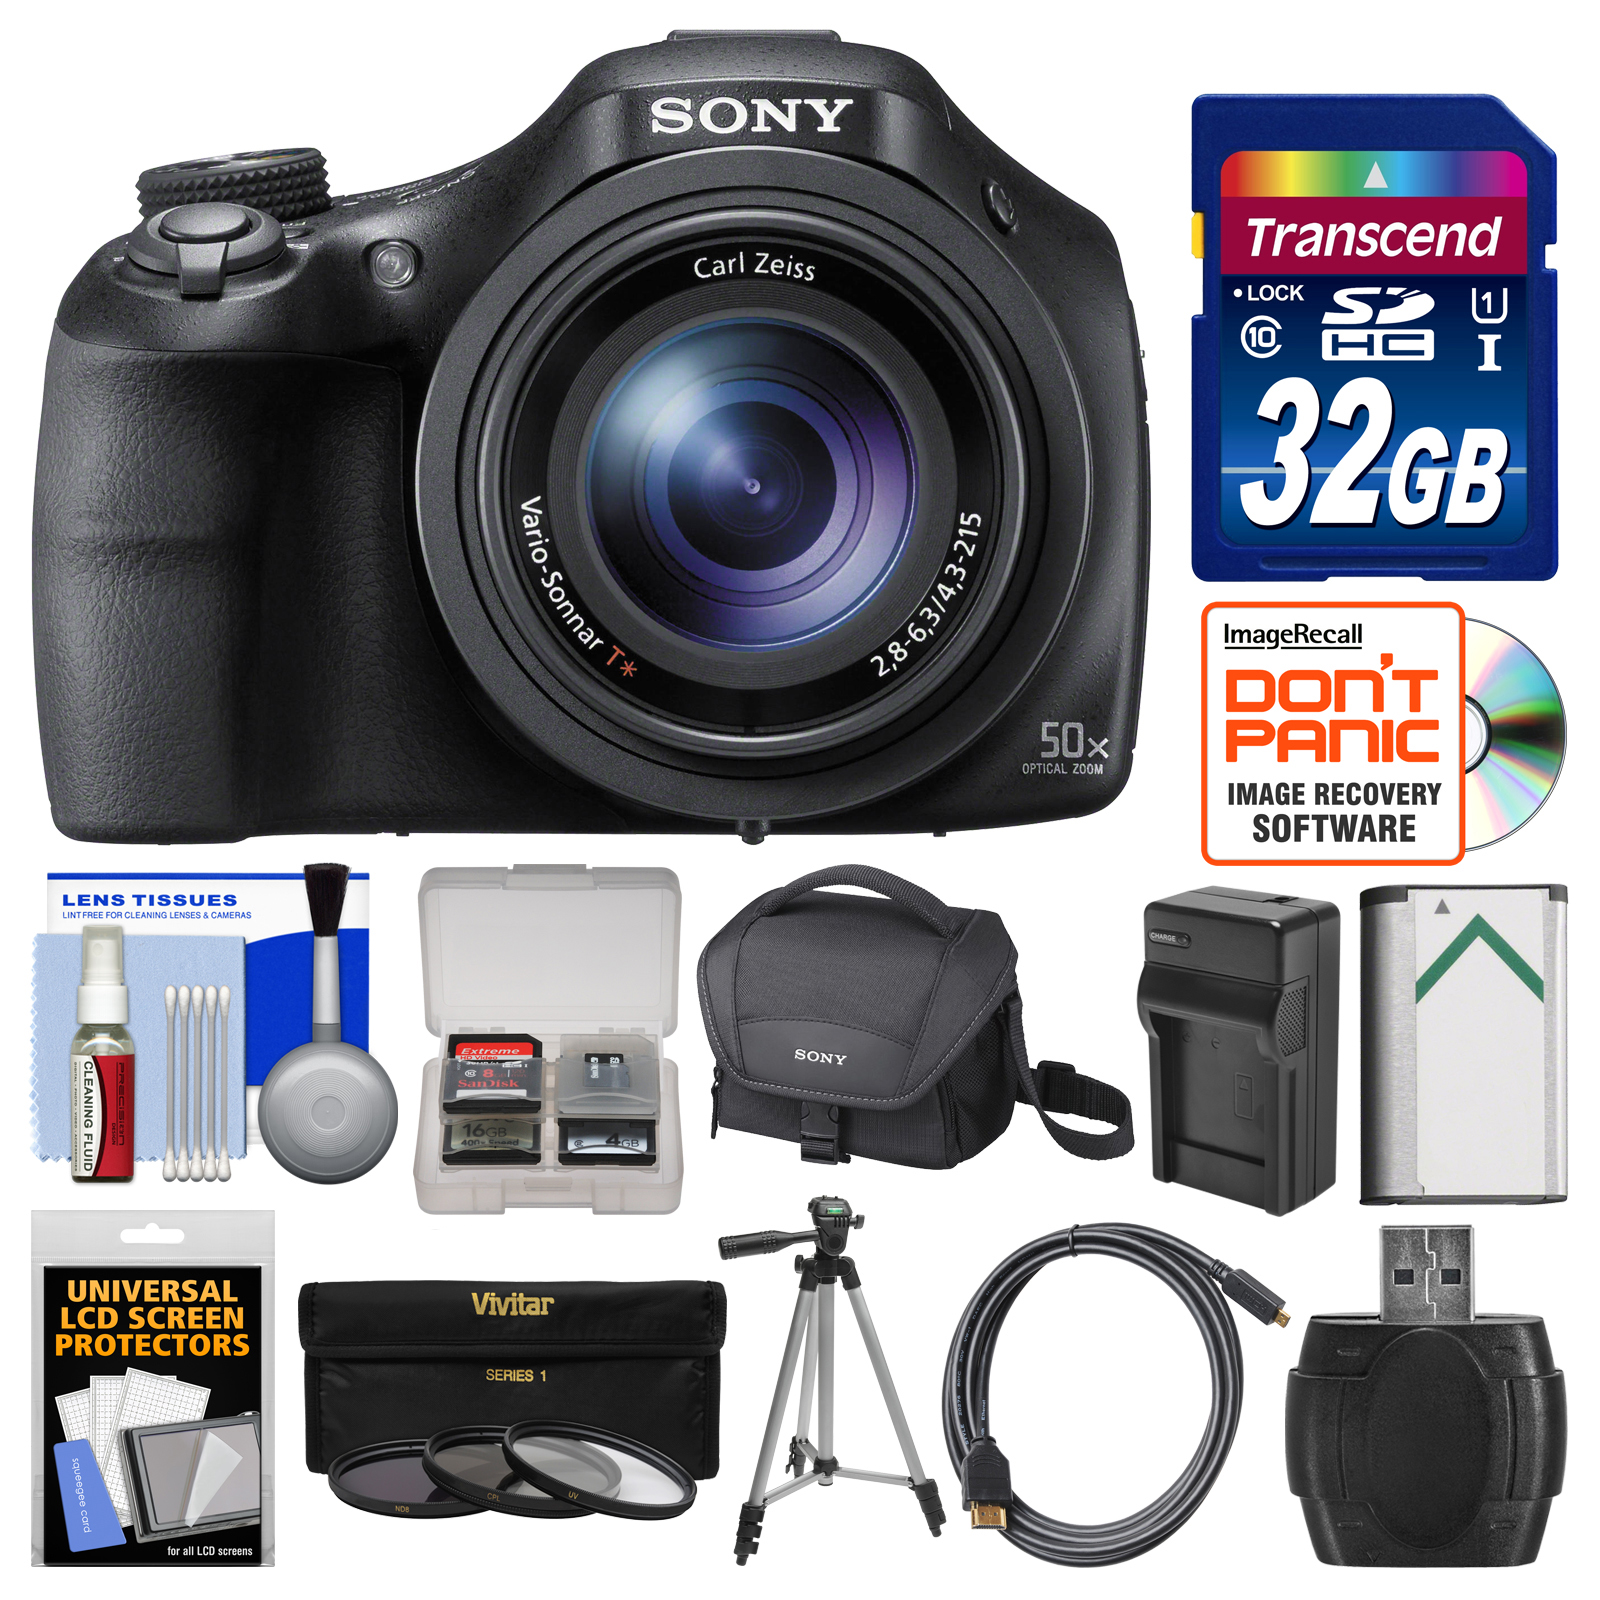 Sony Cyber-Shot DSC-HX400V Wi-Fi Digital Camera with 32GB Card + Case + Battery/Charger + Tripod + 3 Filters Kit